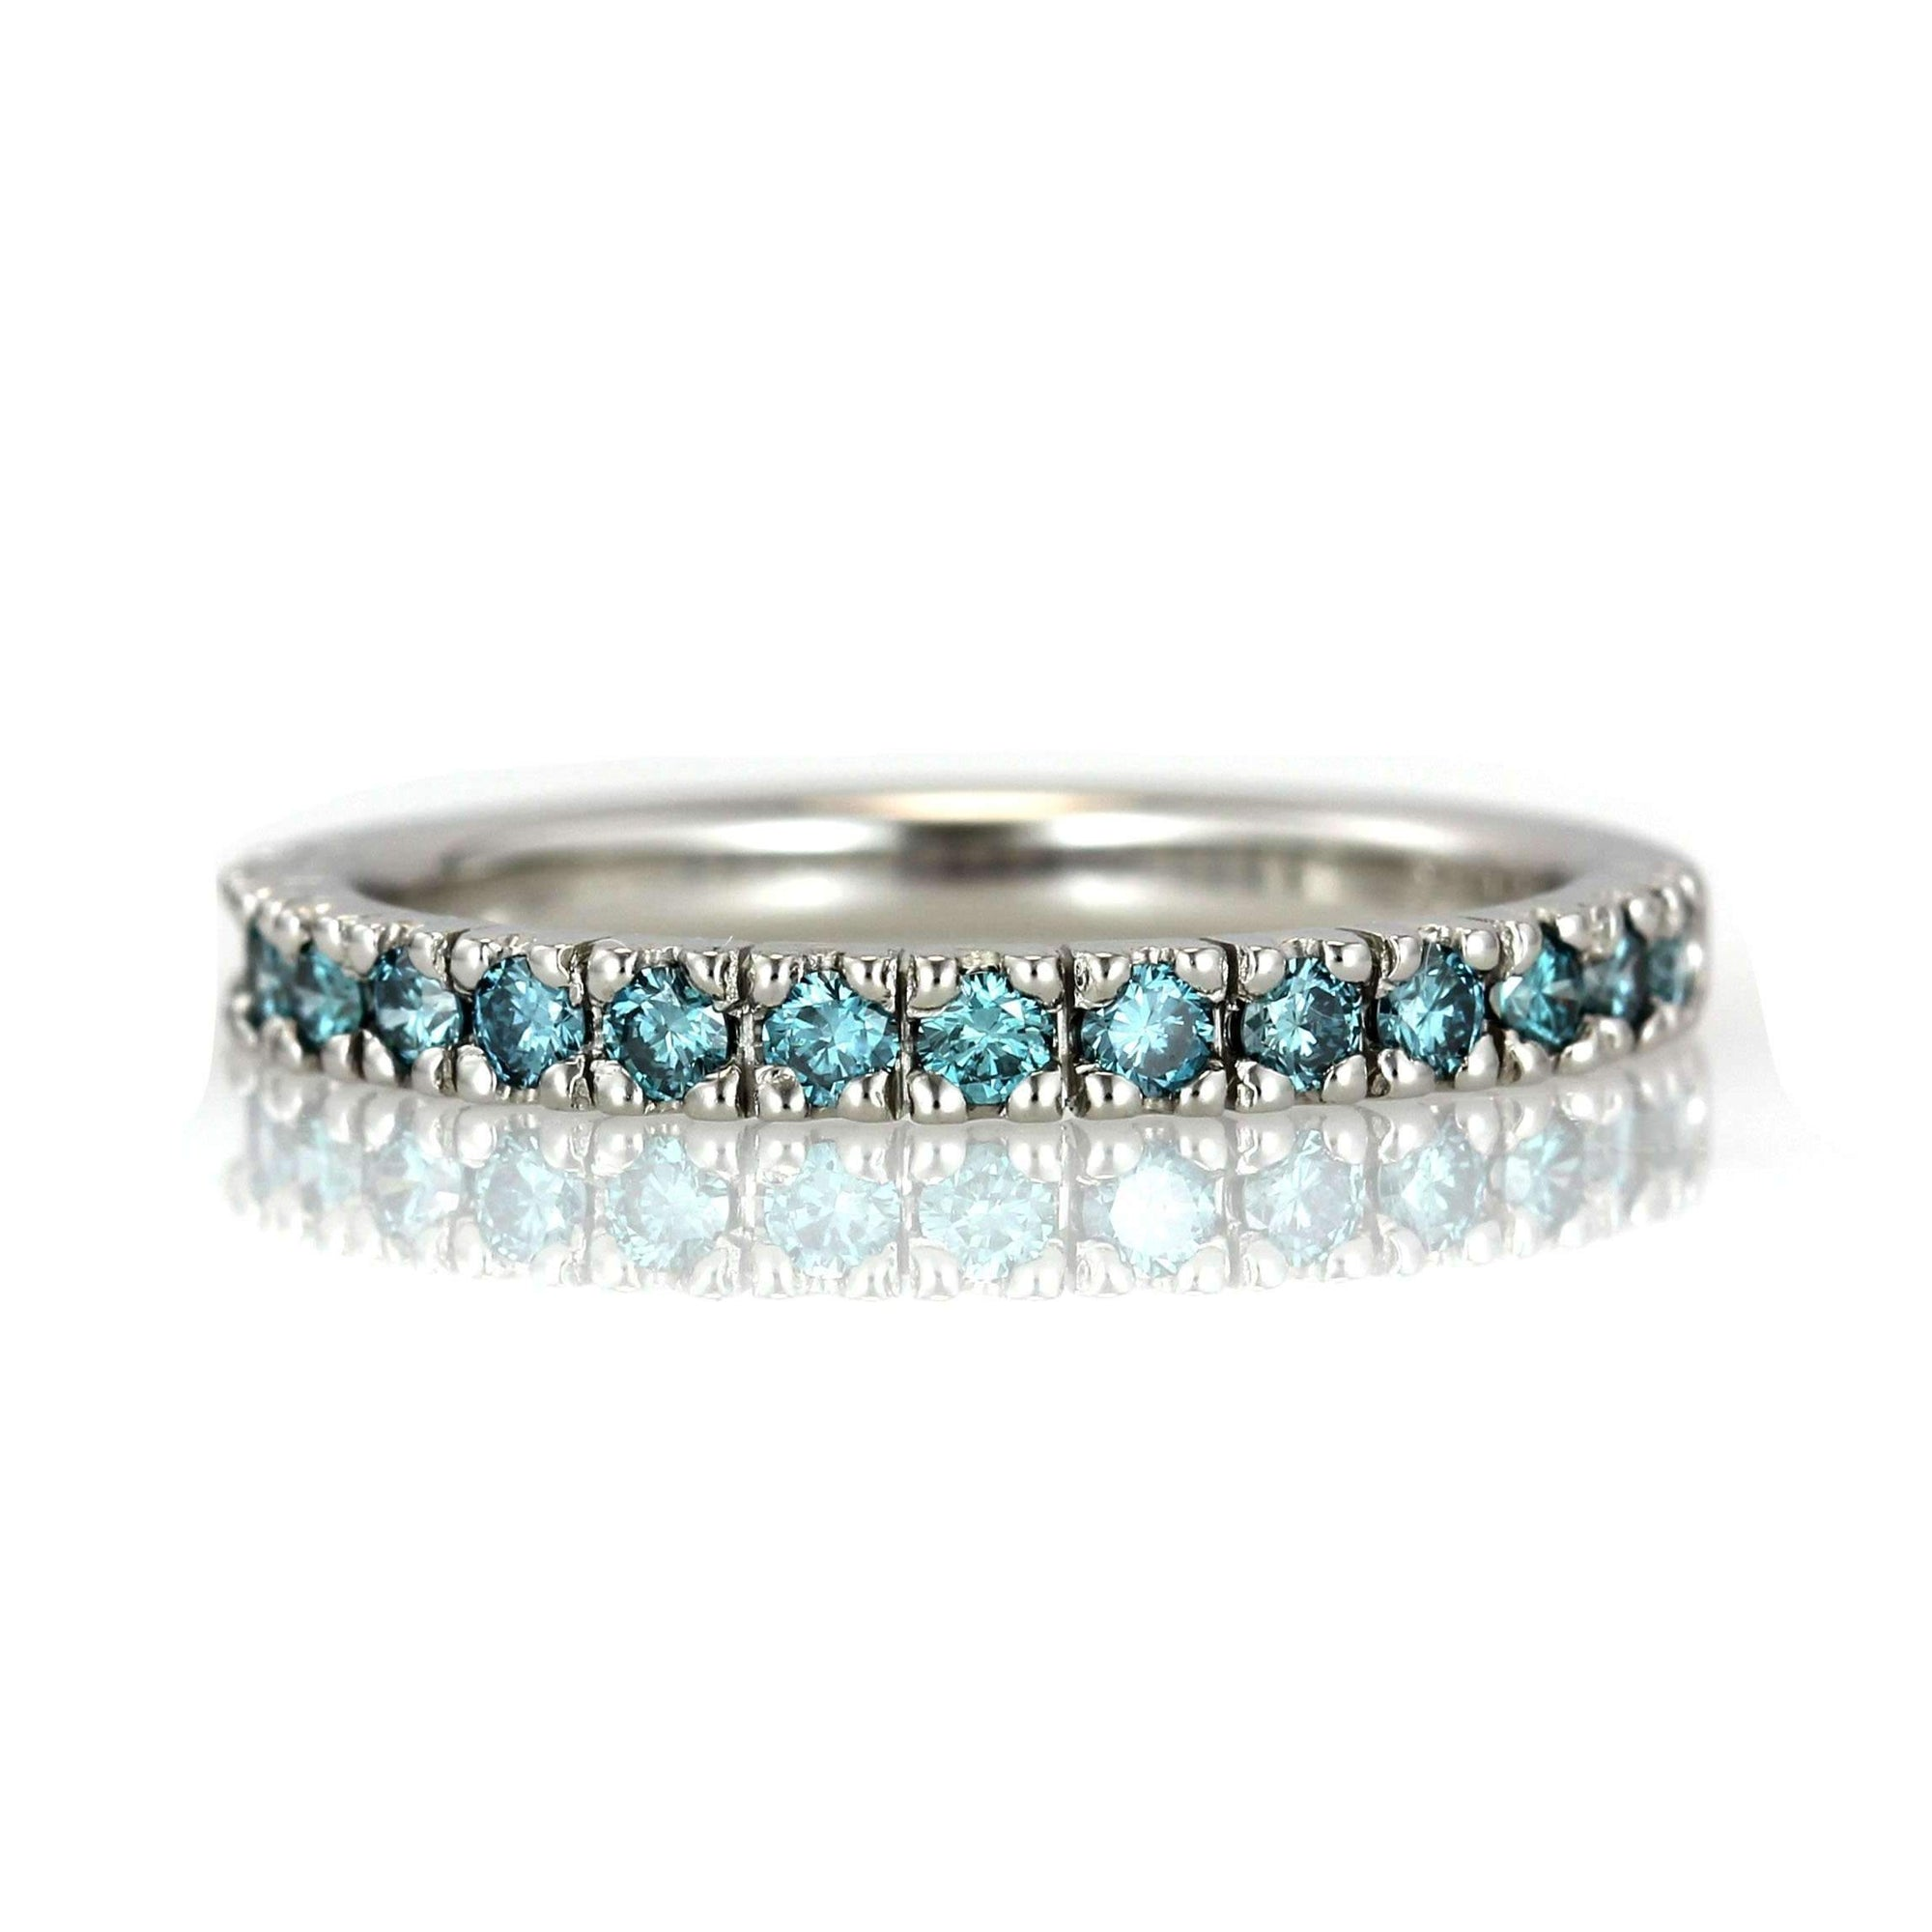 Aqua Blue Diamond Wedding Band - French Pave Setting-Alysha Whitfield